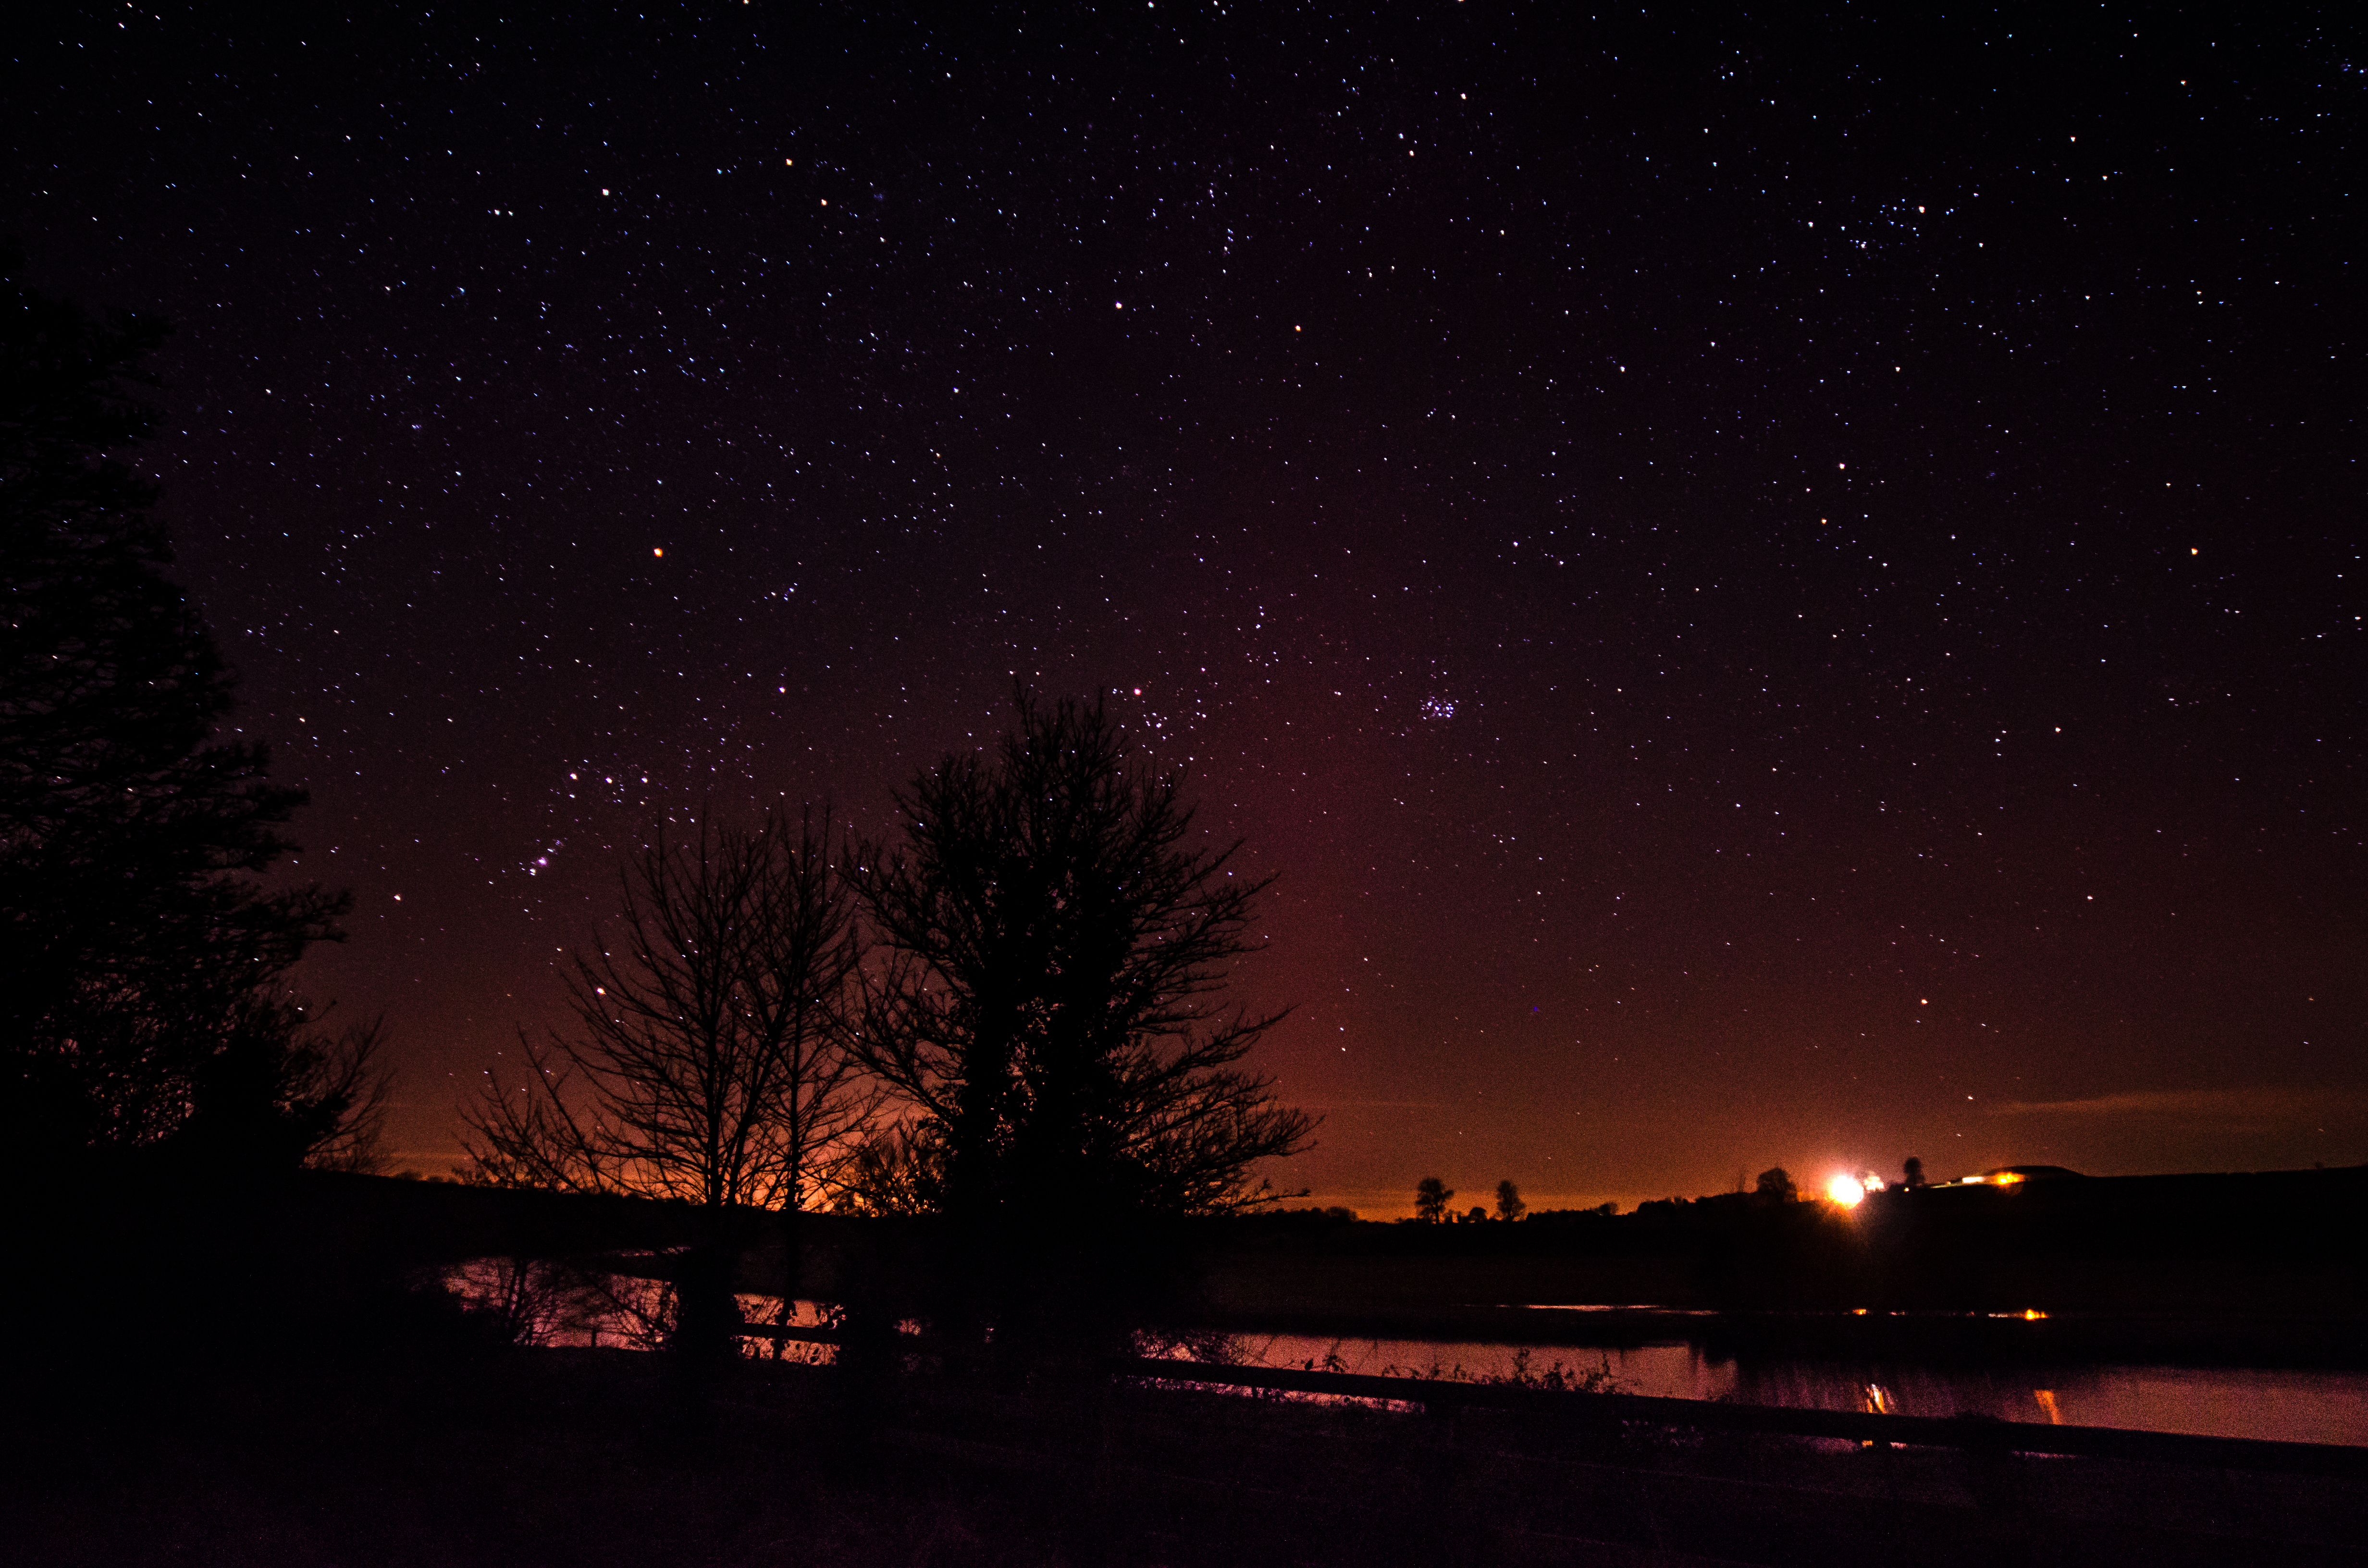 Orion and Taurus over the Boyne and Newgrange